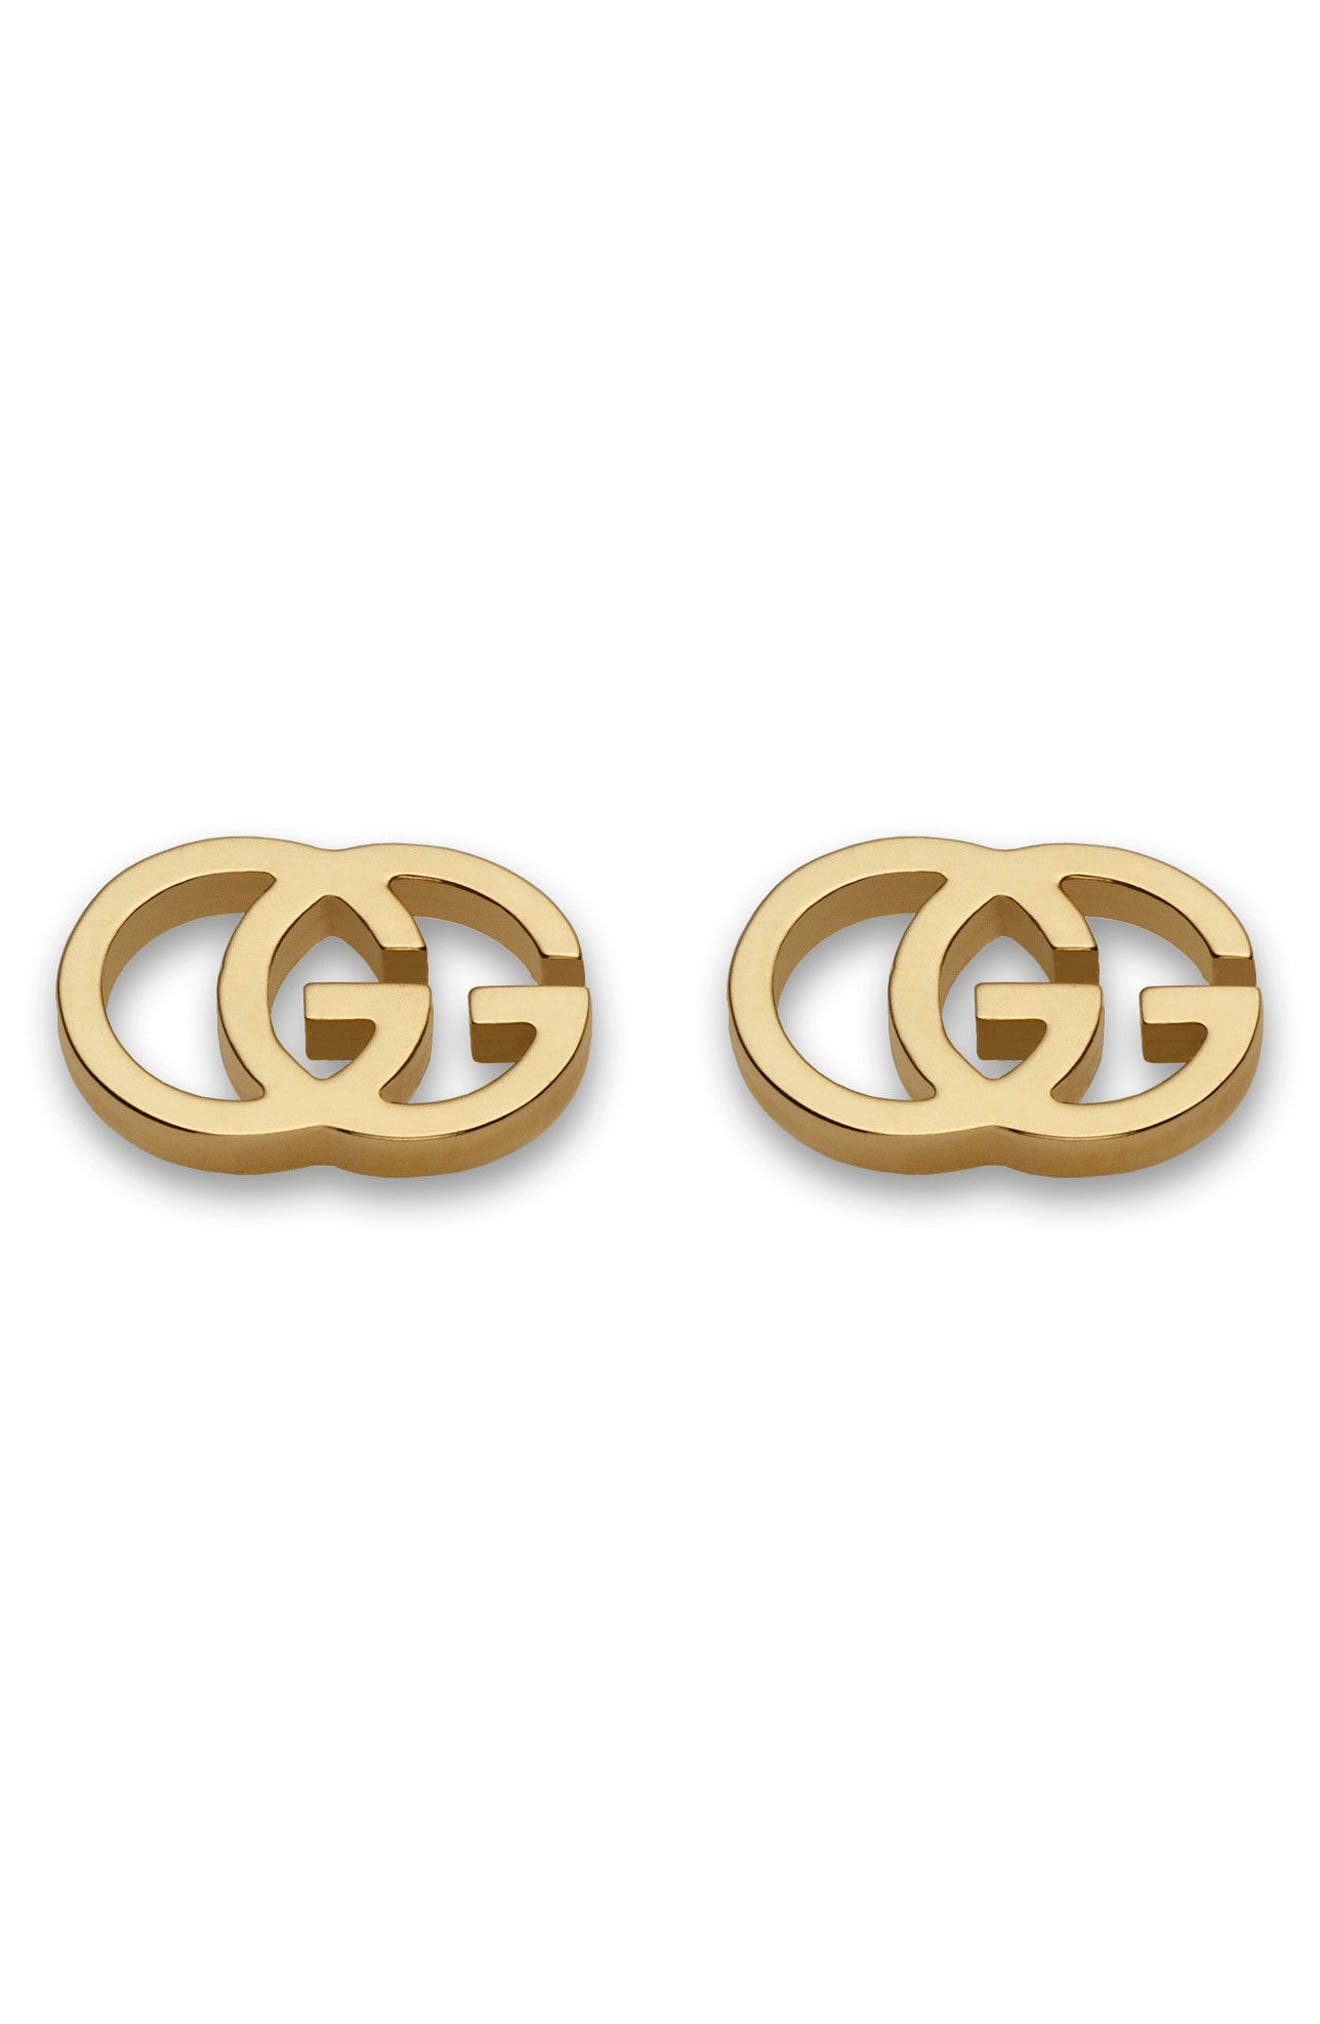 Double-G Stud Earrings,                             Main thumbnail 1, color,                             YELLOW GOLD